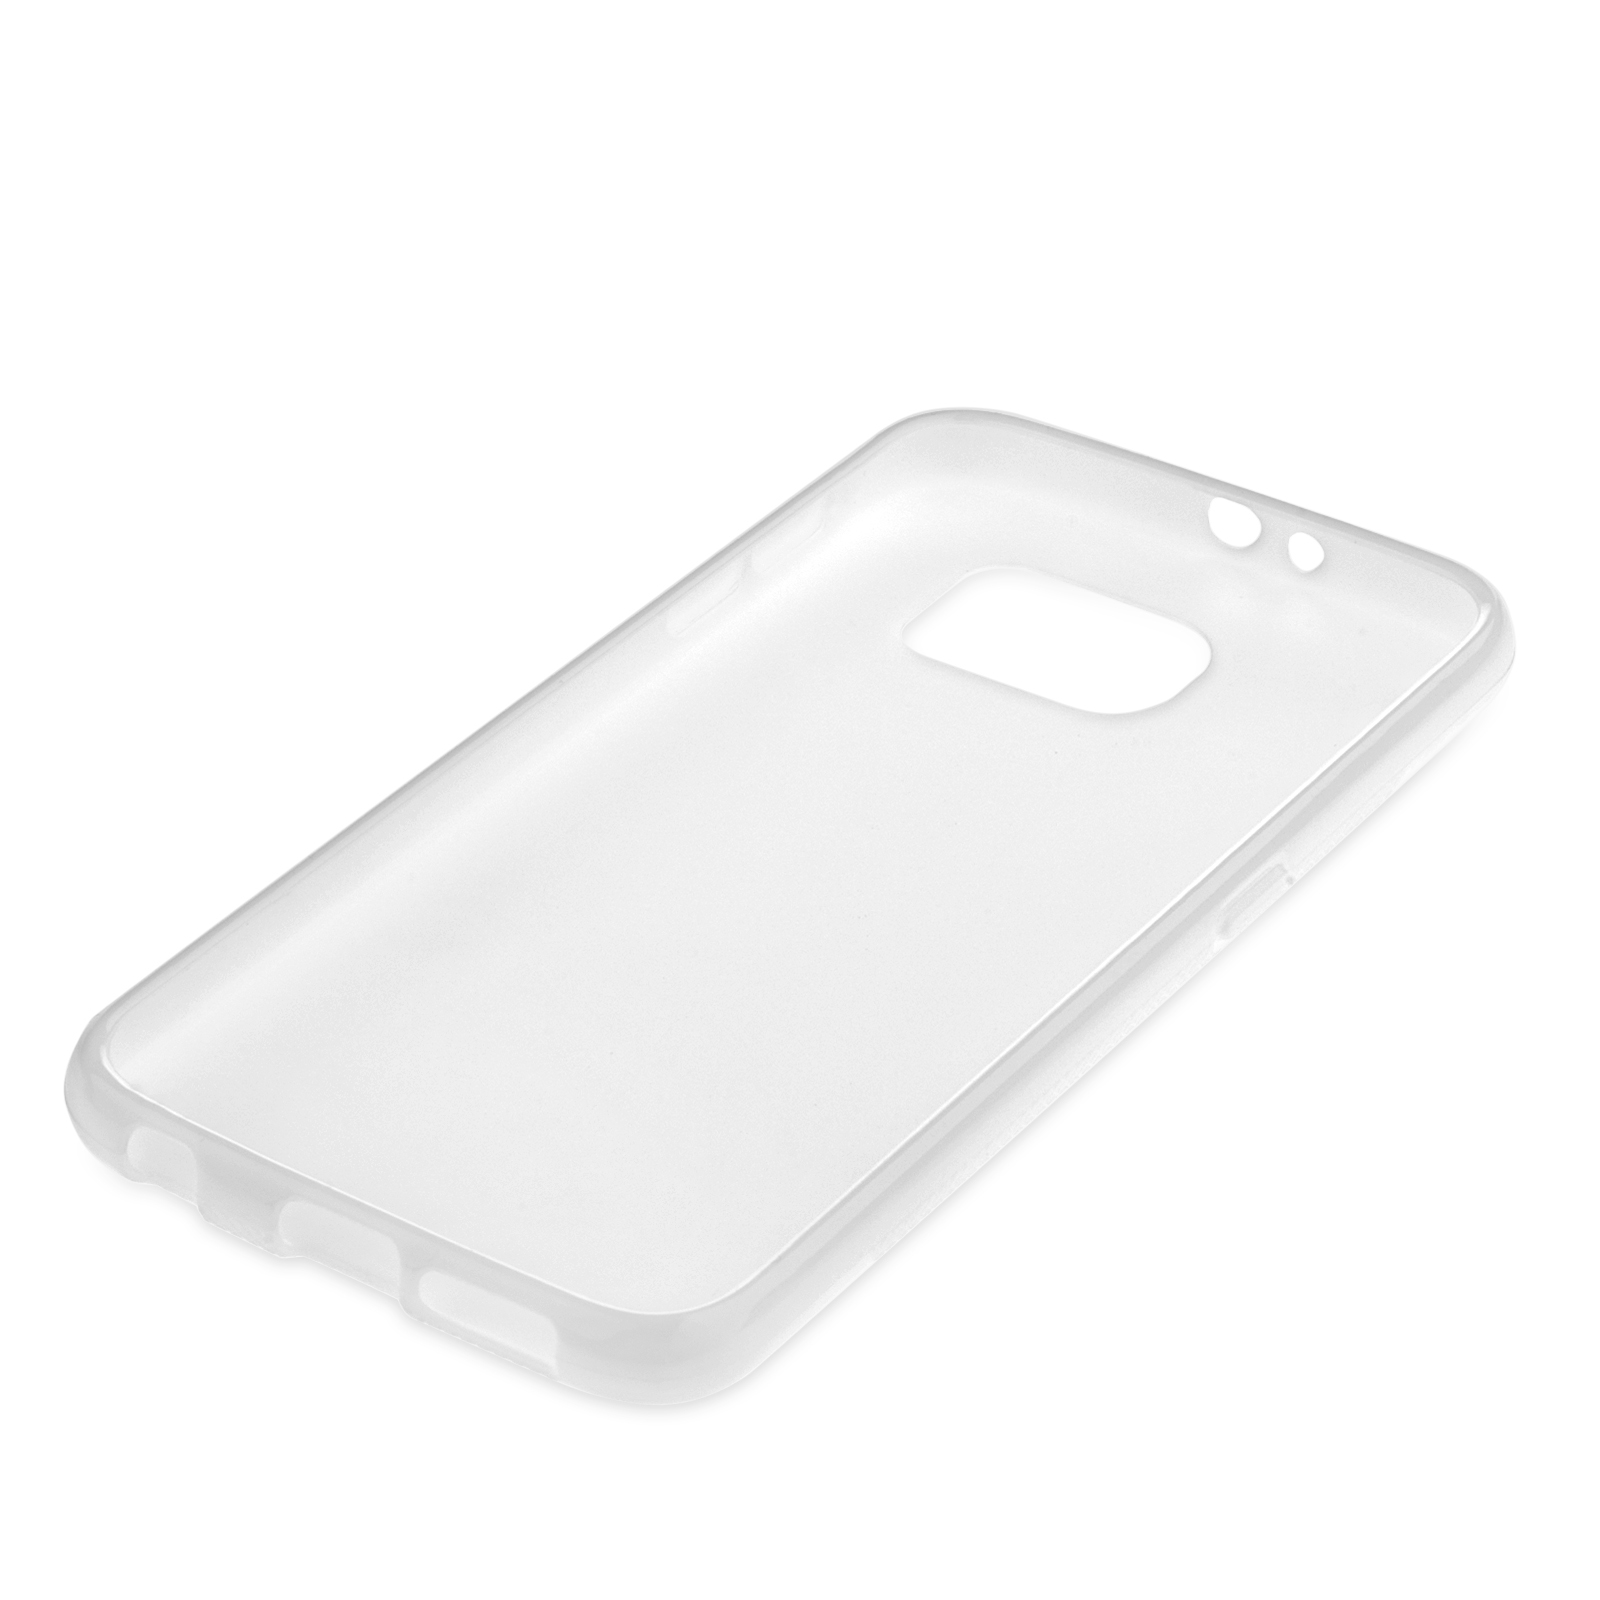 0054459_yousave-accessories-samsung-galaxy-s6-silicone-gel-x-line-case-white